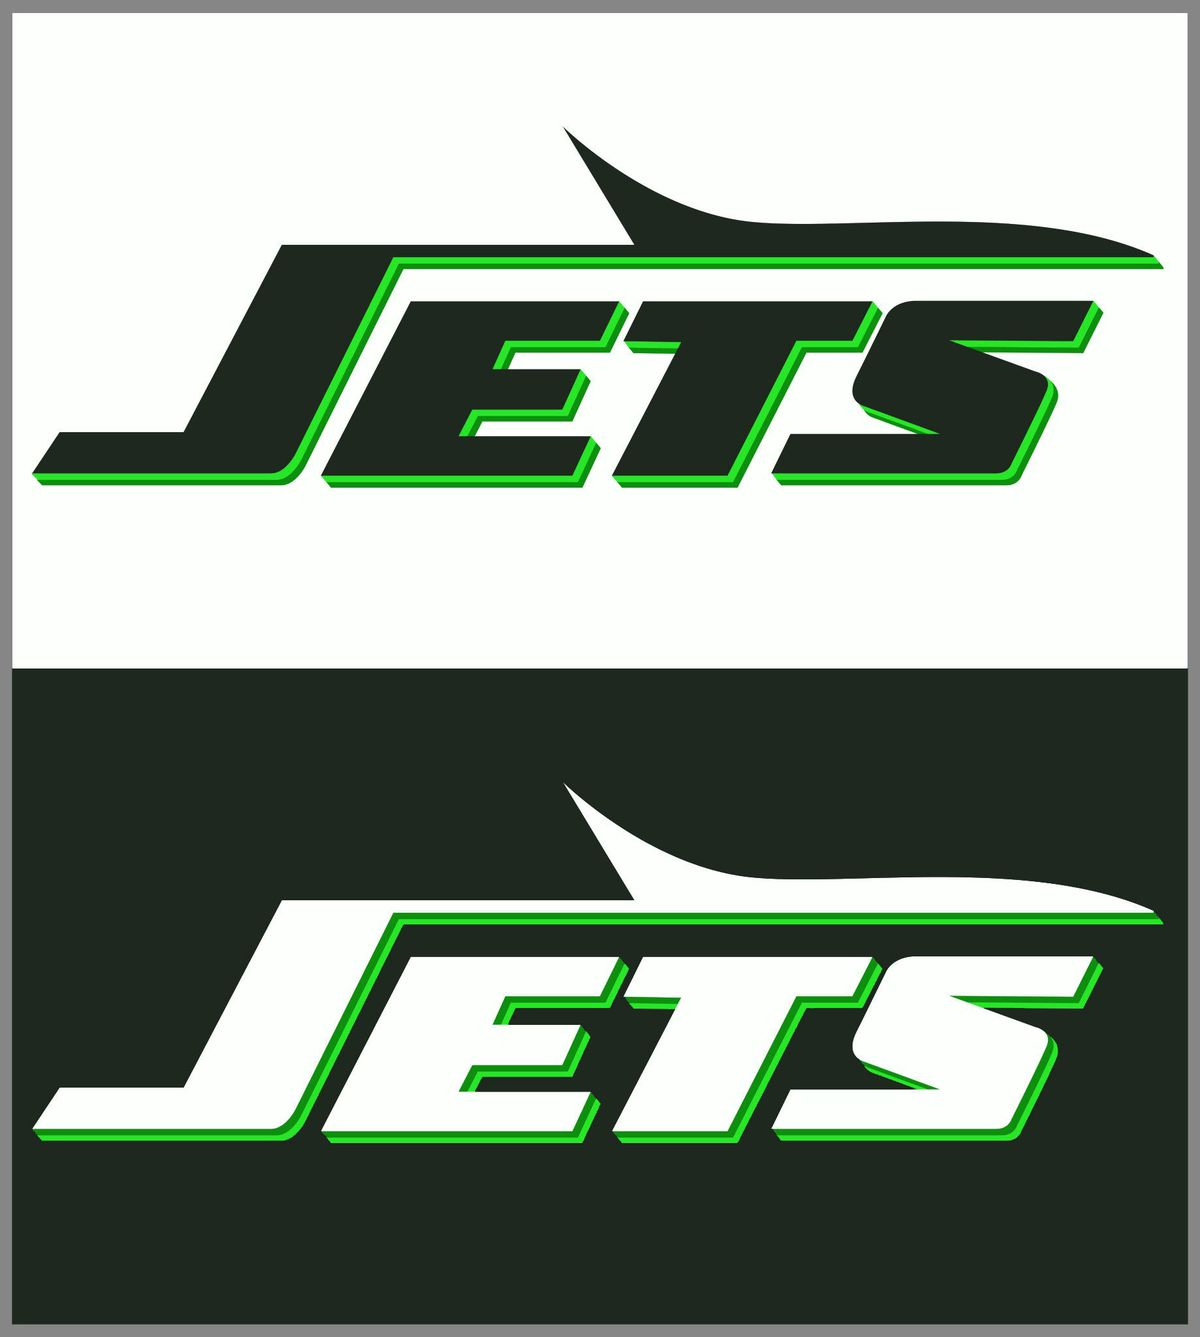 New Jets uniforms designed by fans of the team.